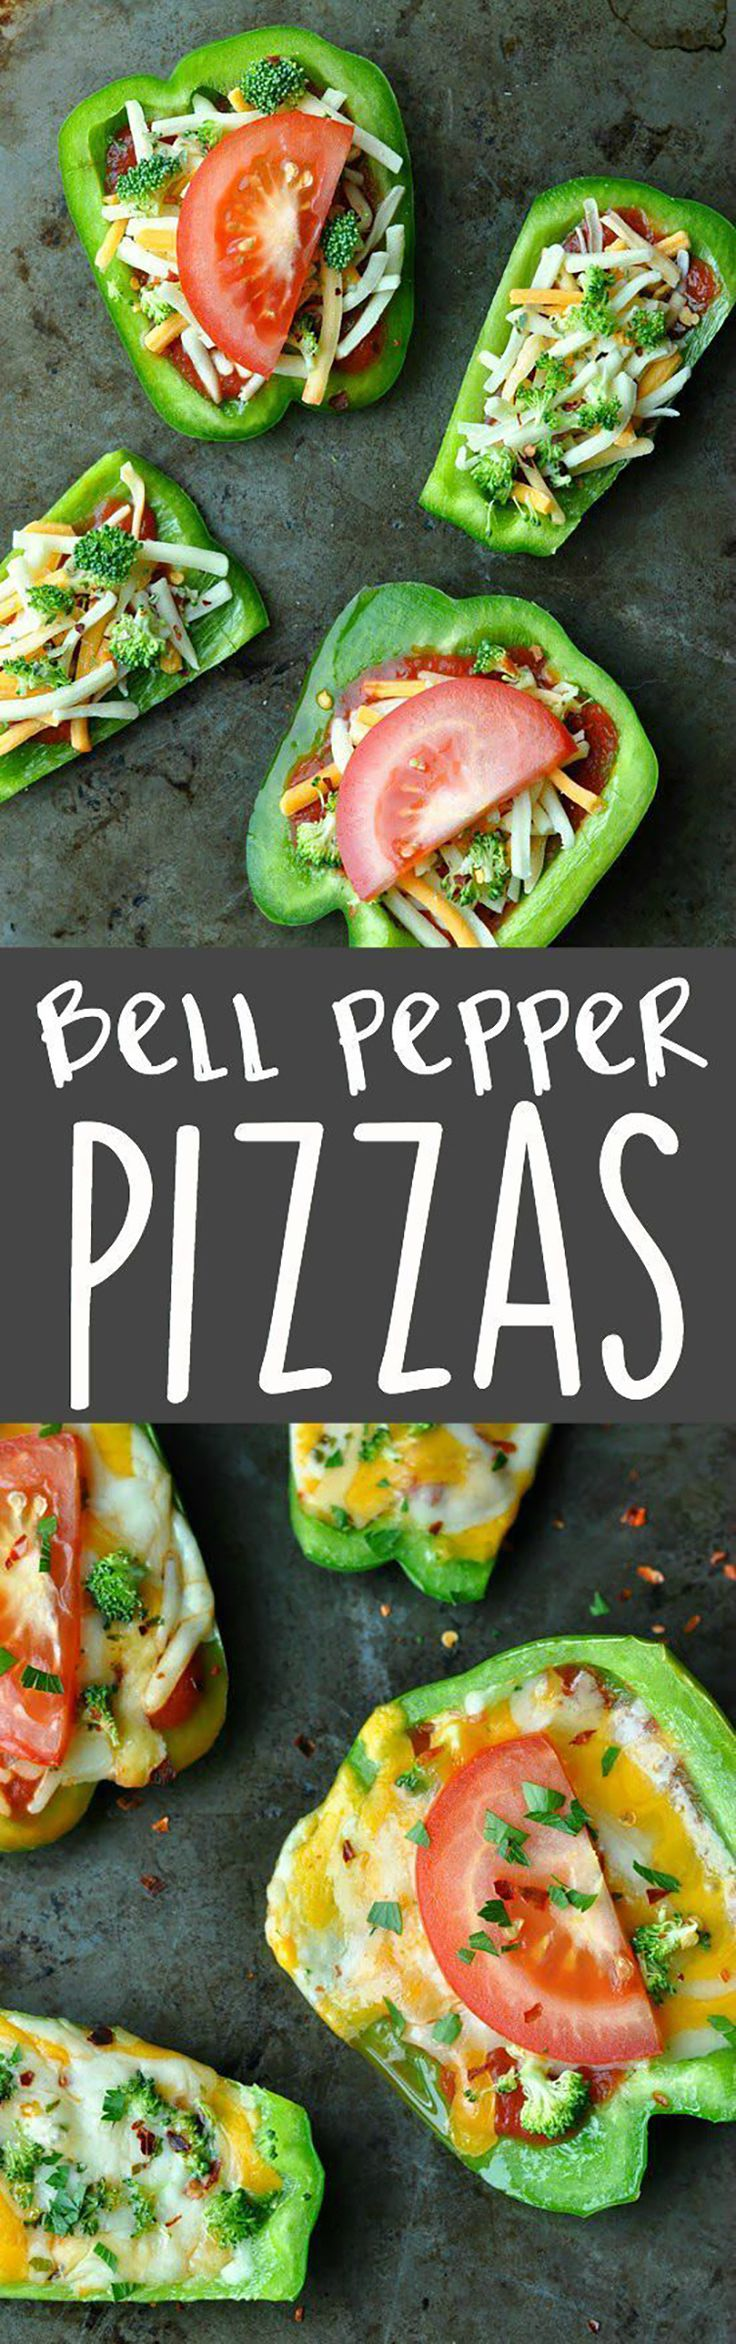 5. Bell Pepper Pizzas #healthy #portable #lunch #recipes http://greatist.com/eat/healthy-lunch-ideas-portable-lunch-recipes